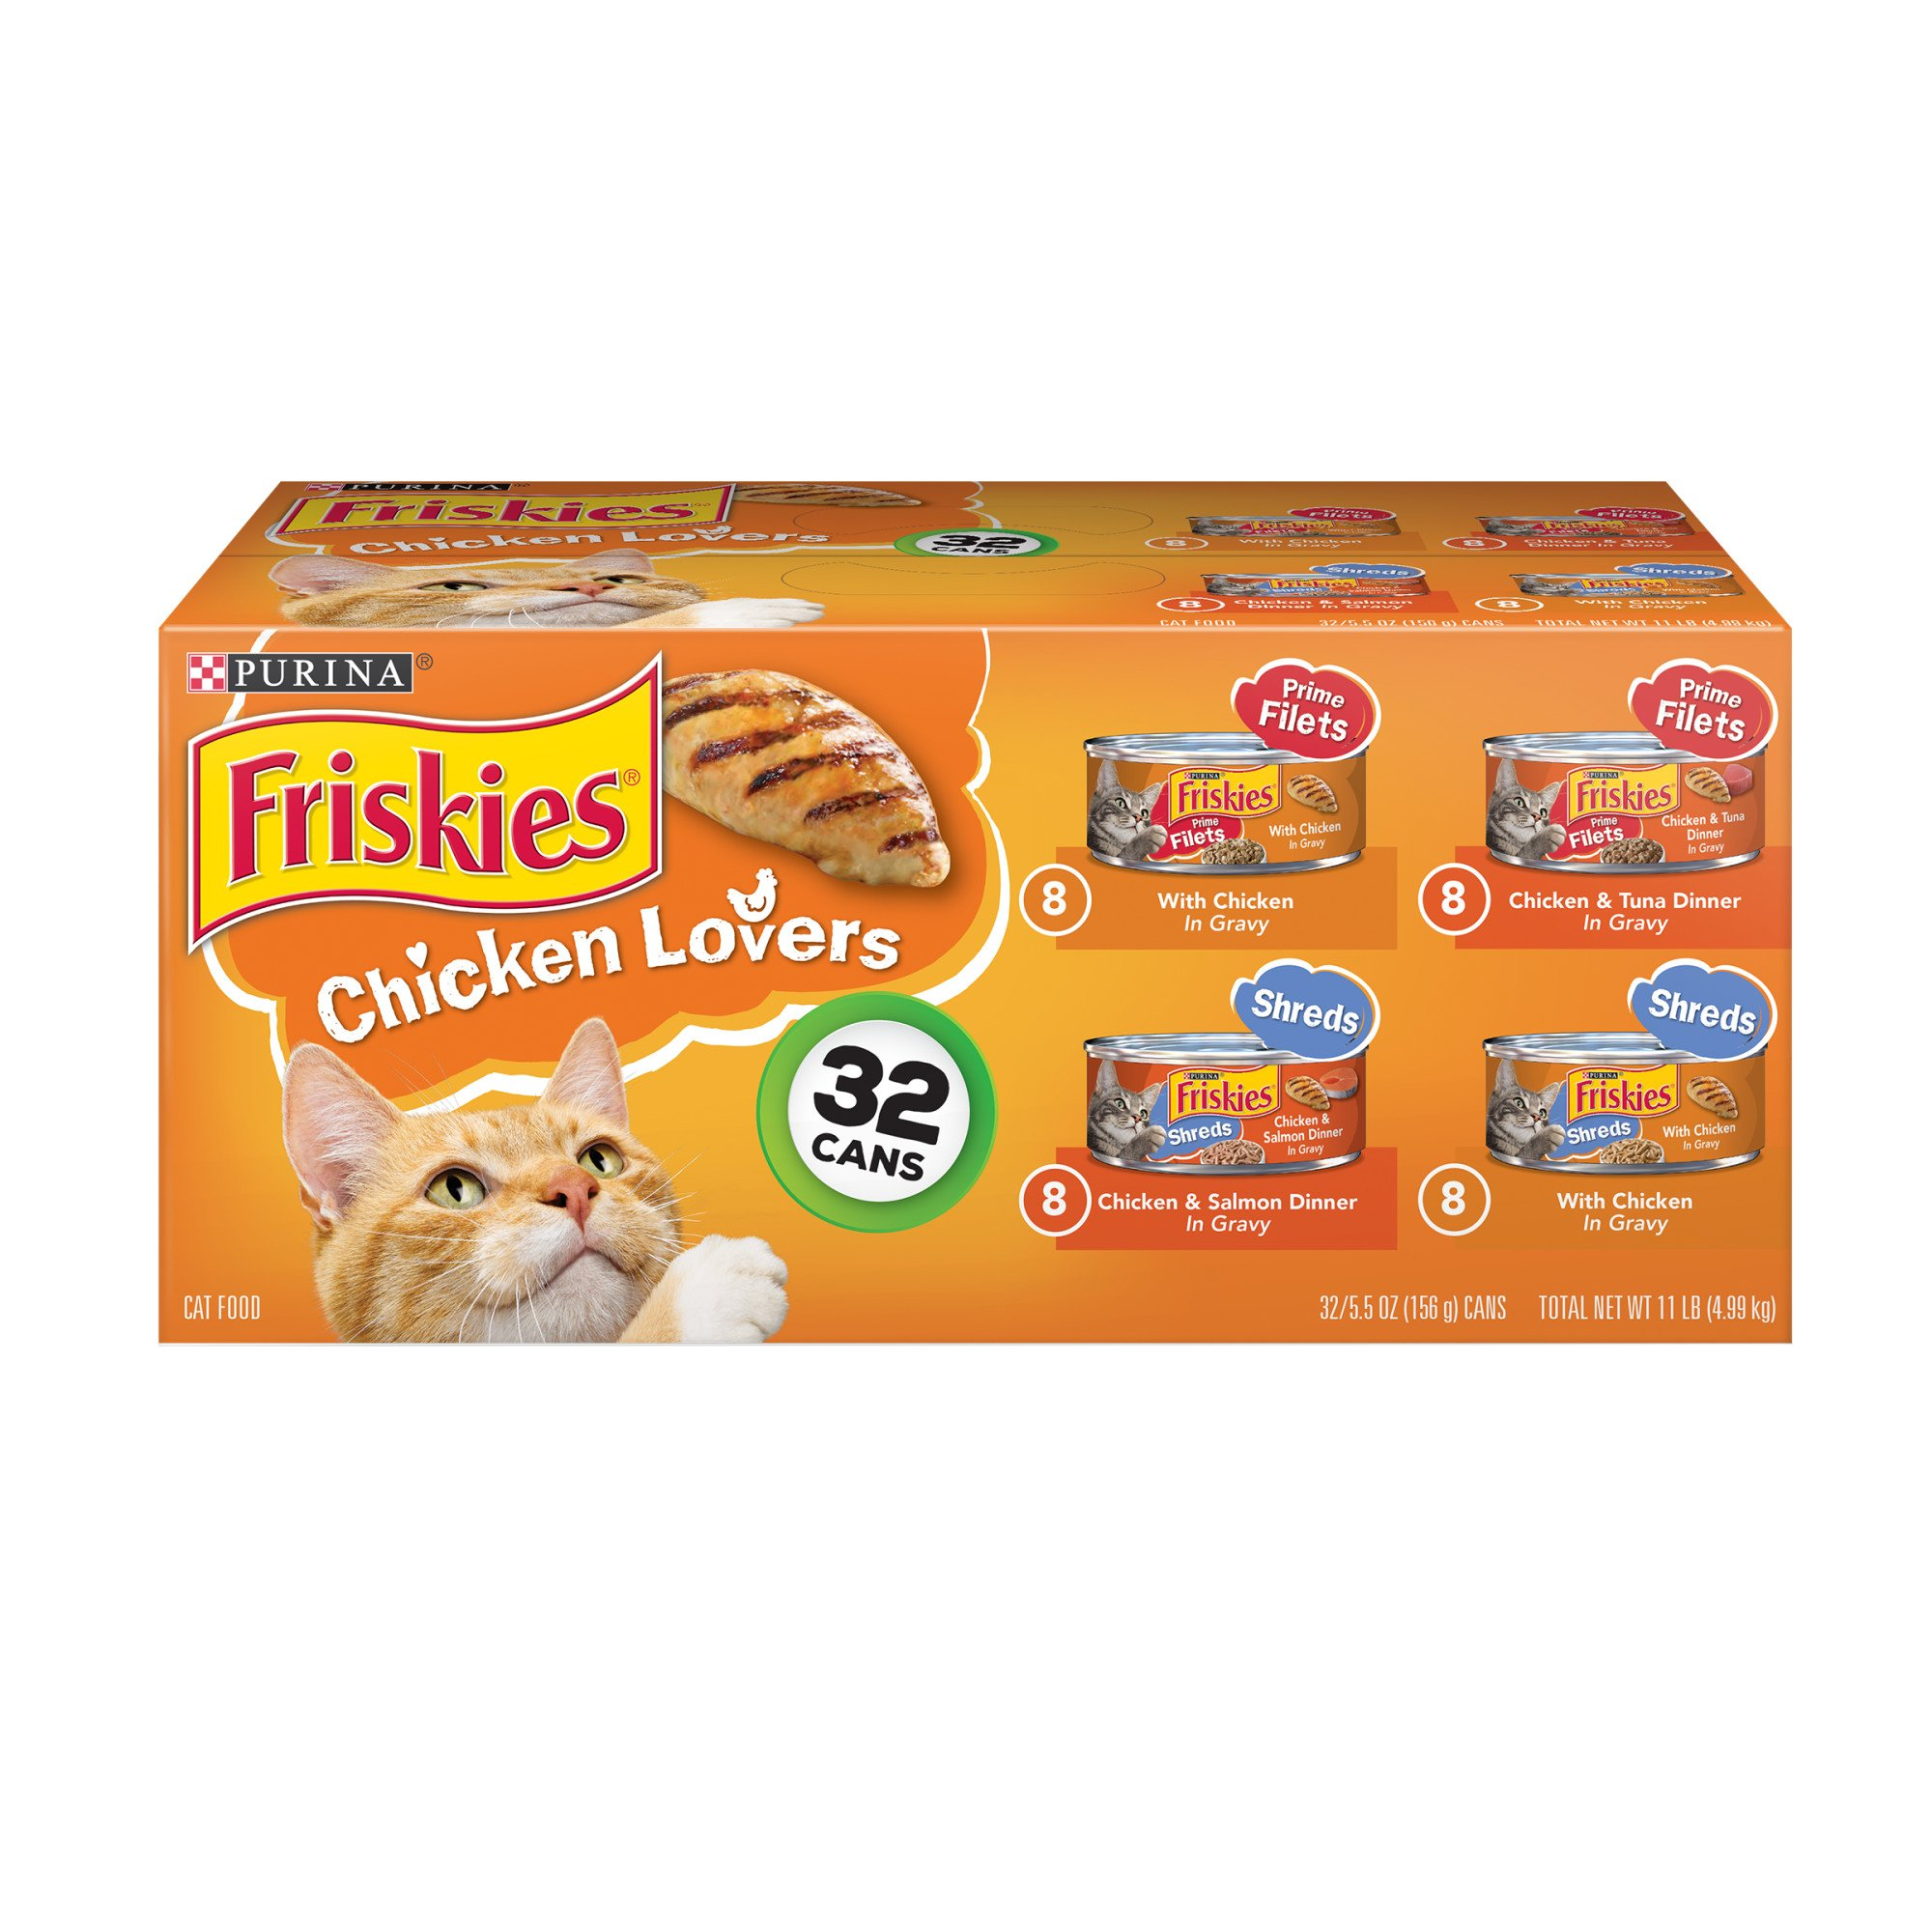 Purina Friskies Chicken Lovers Shreds & Filets Adult Wet Cat Food Variety Pack, 5.5 oz., Count of 32